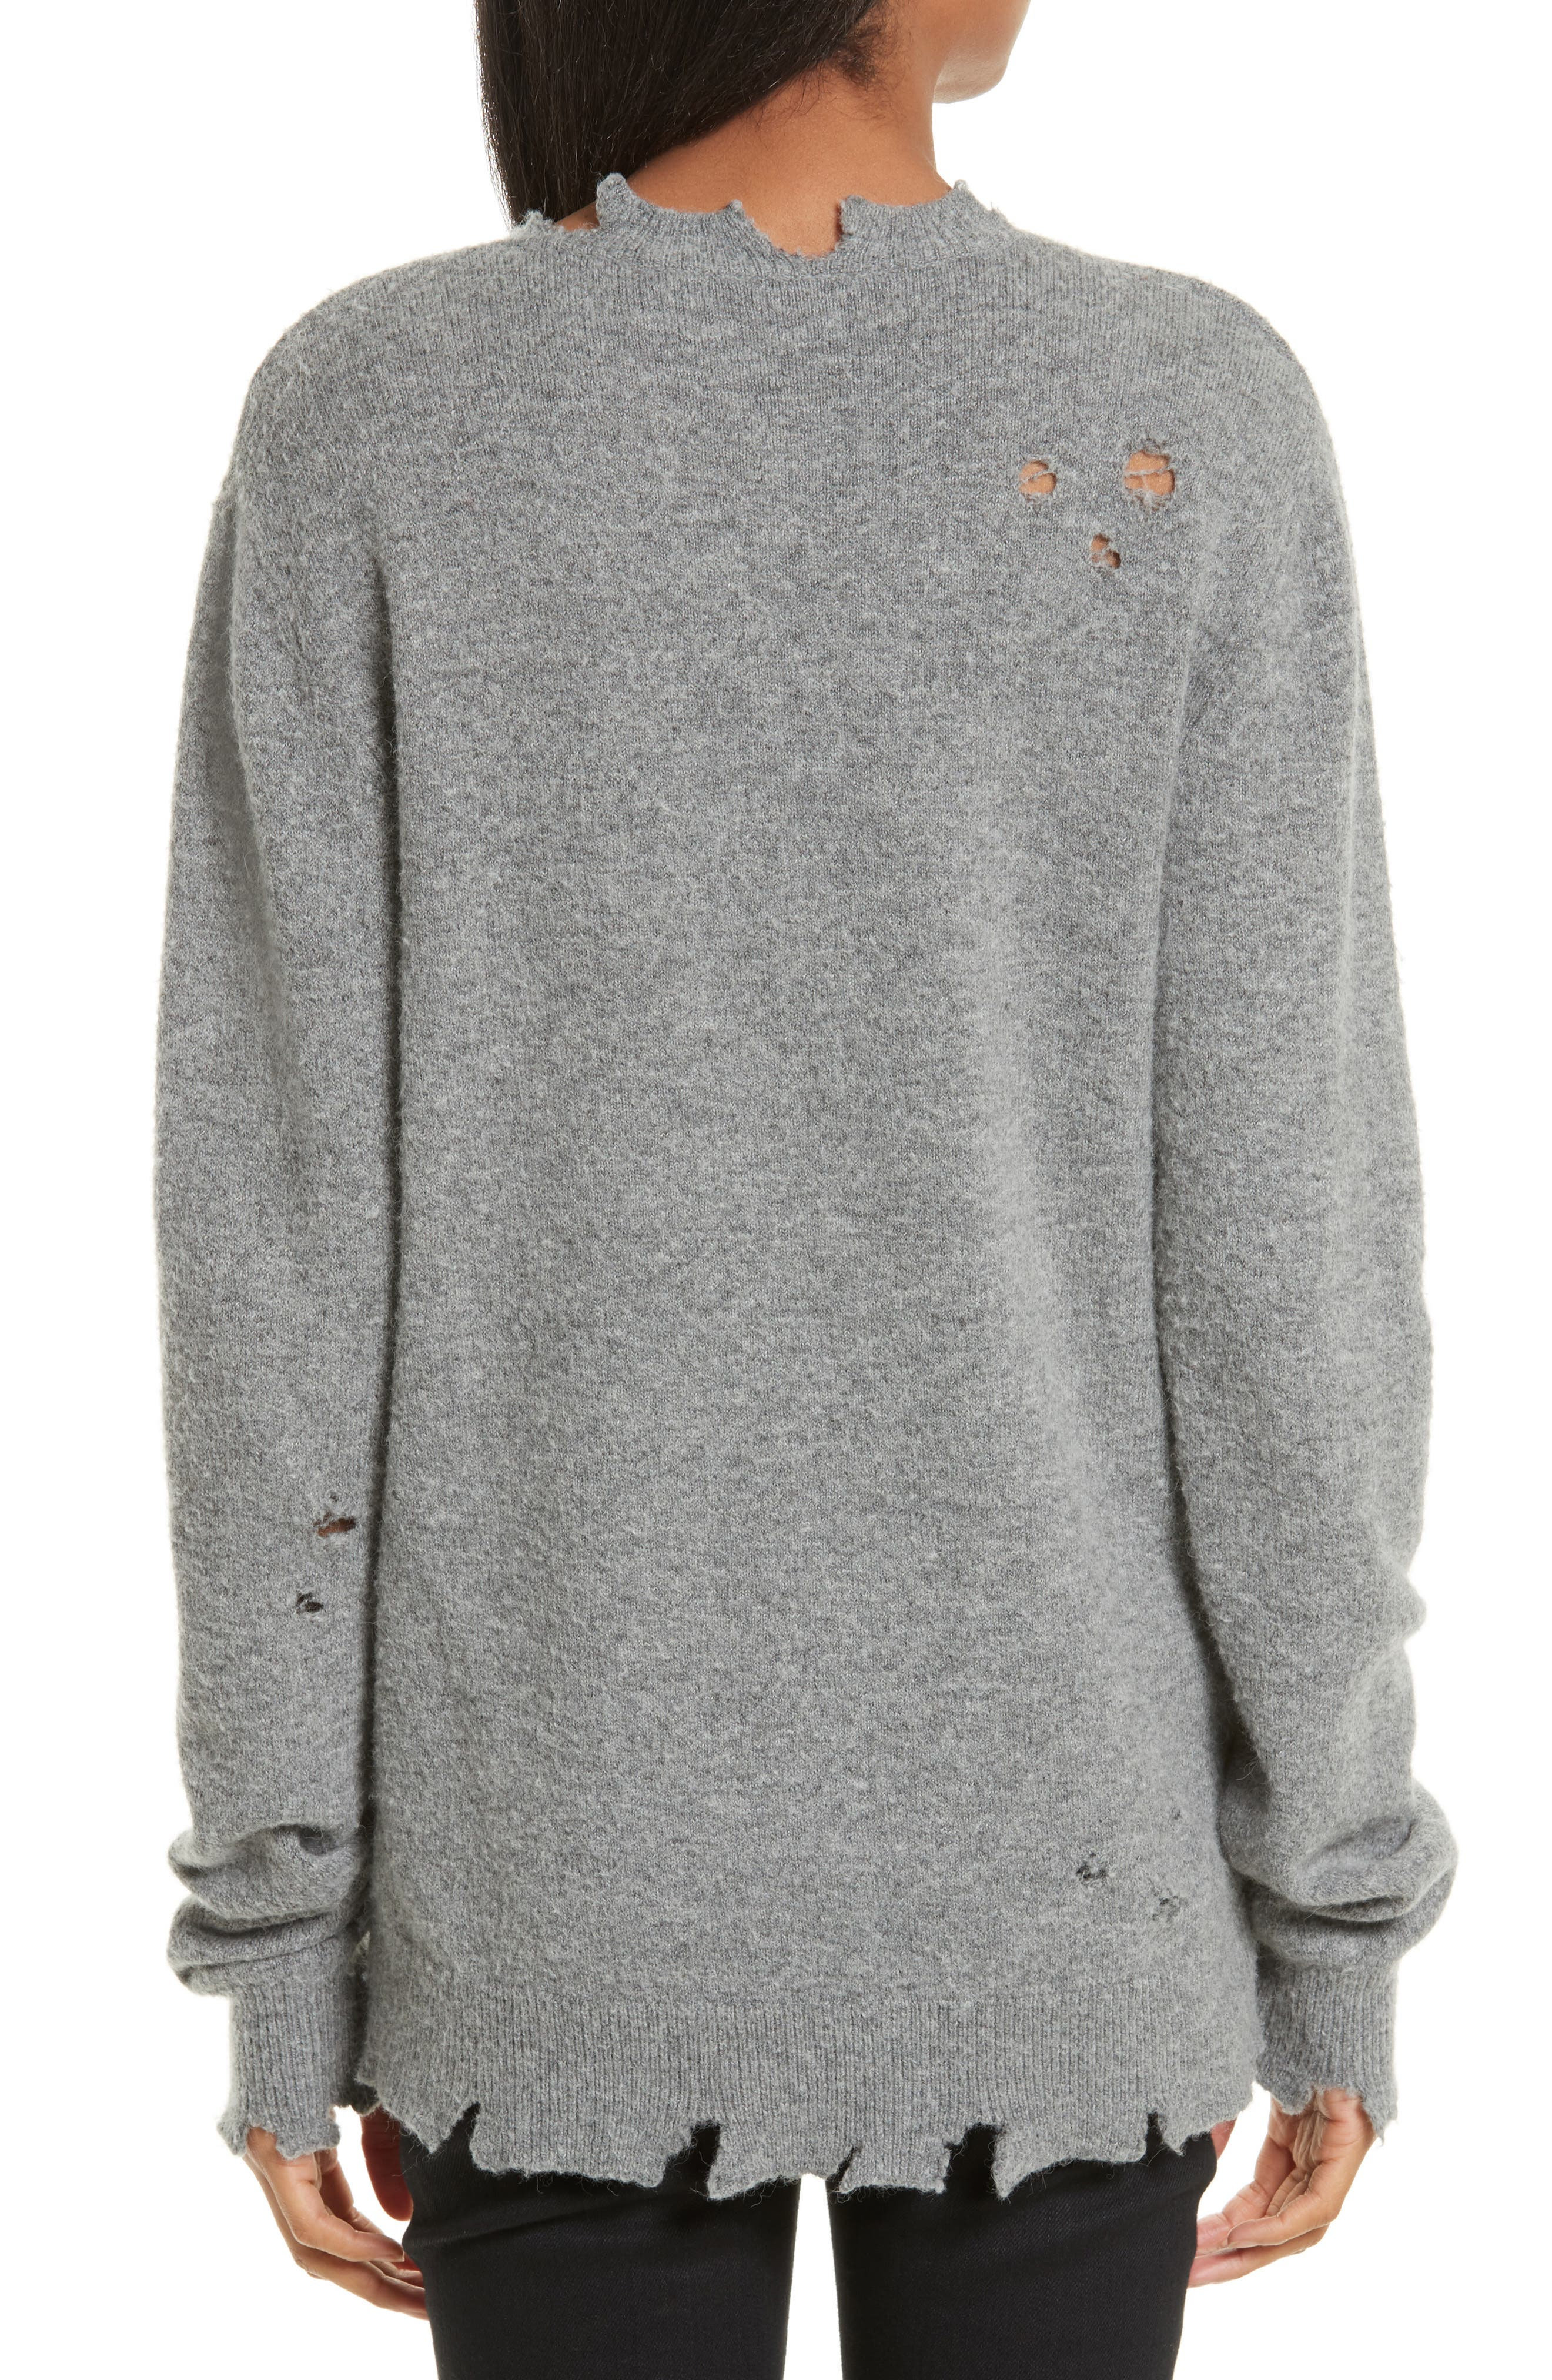 Brody Distressed Sweater,                             Alternate thumbnail 2, color,                             Grey